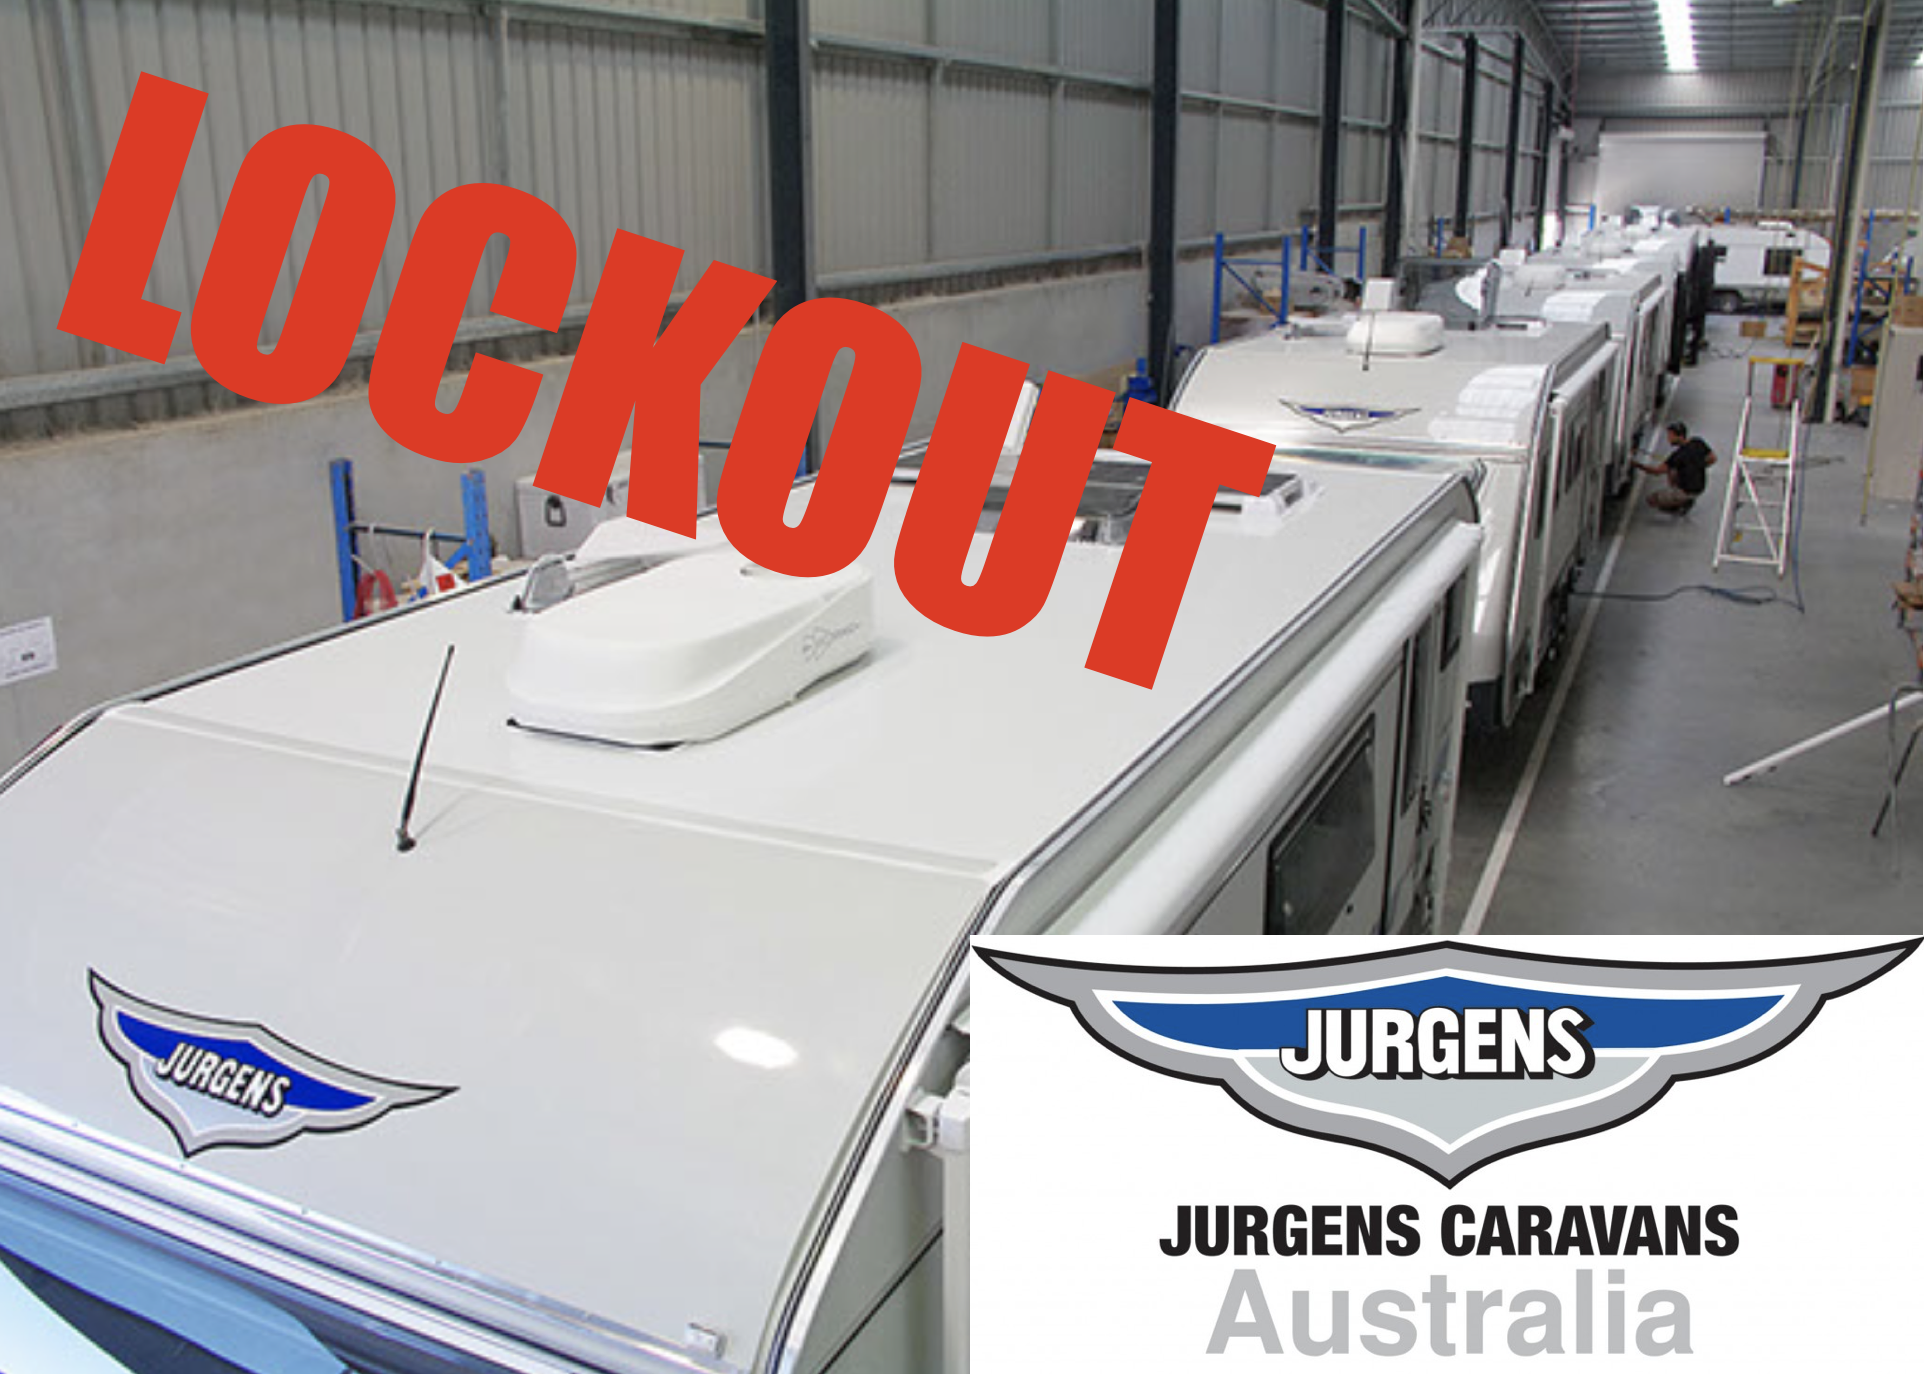 Jurgens Australia workers locked out of the factory….AGAIN.